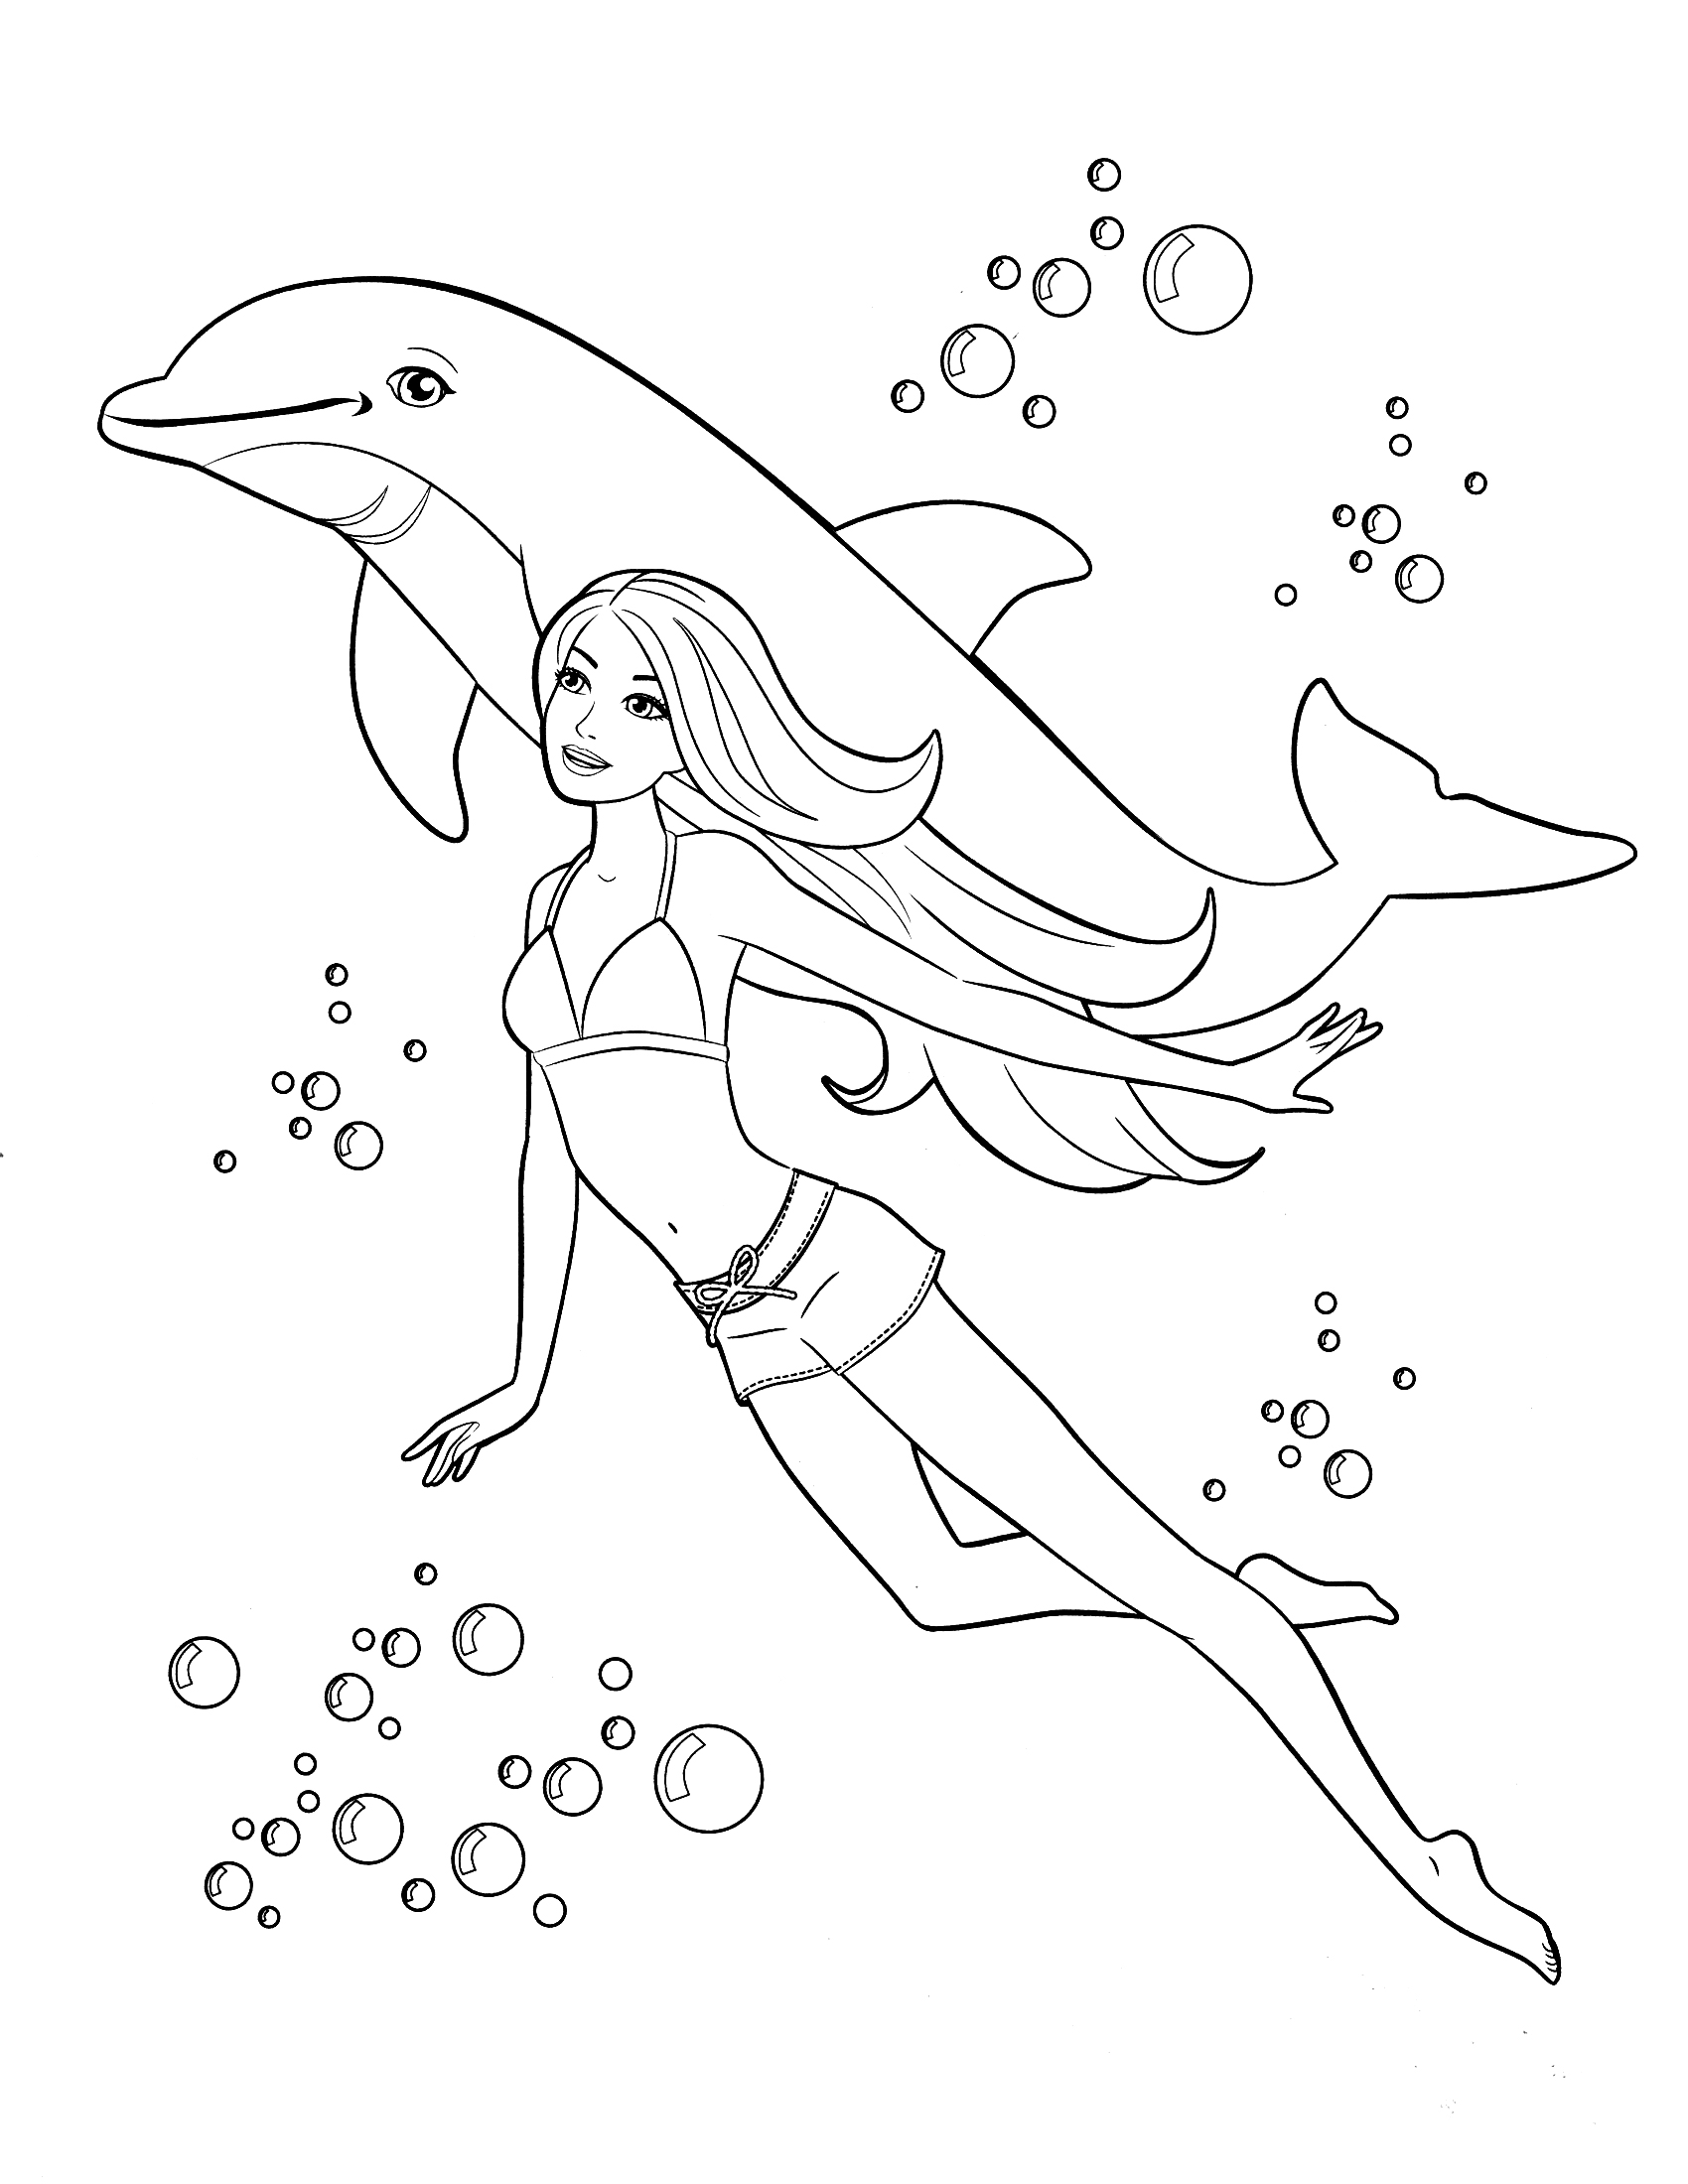 Barbie Doll Princess Coloring Pages Have A Great Time With Her Friend Dolphin